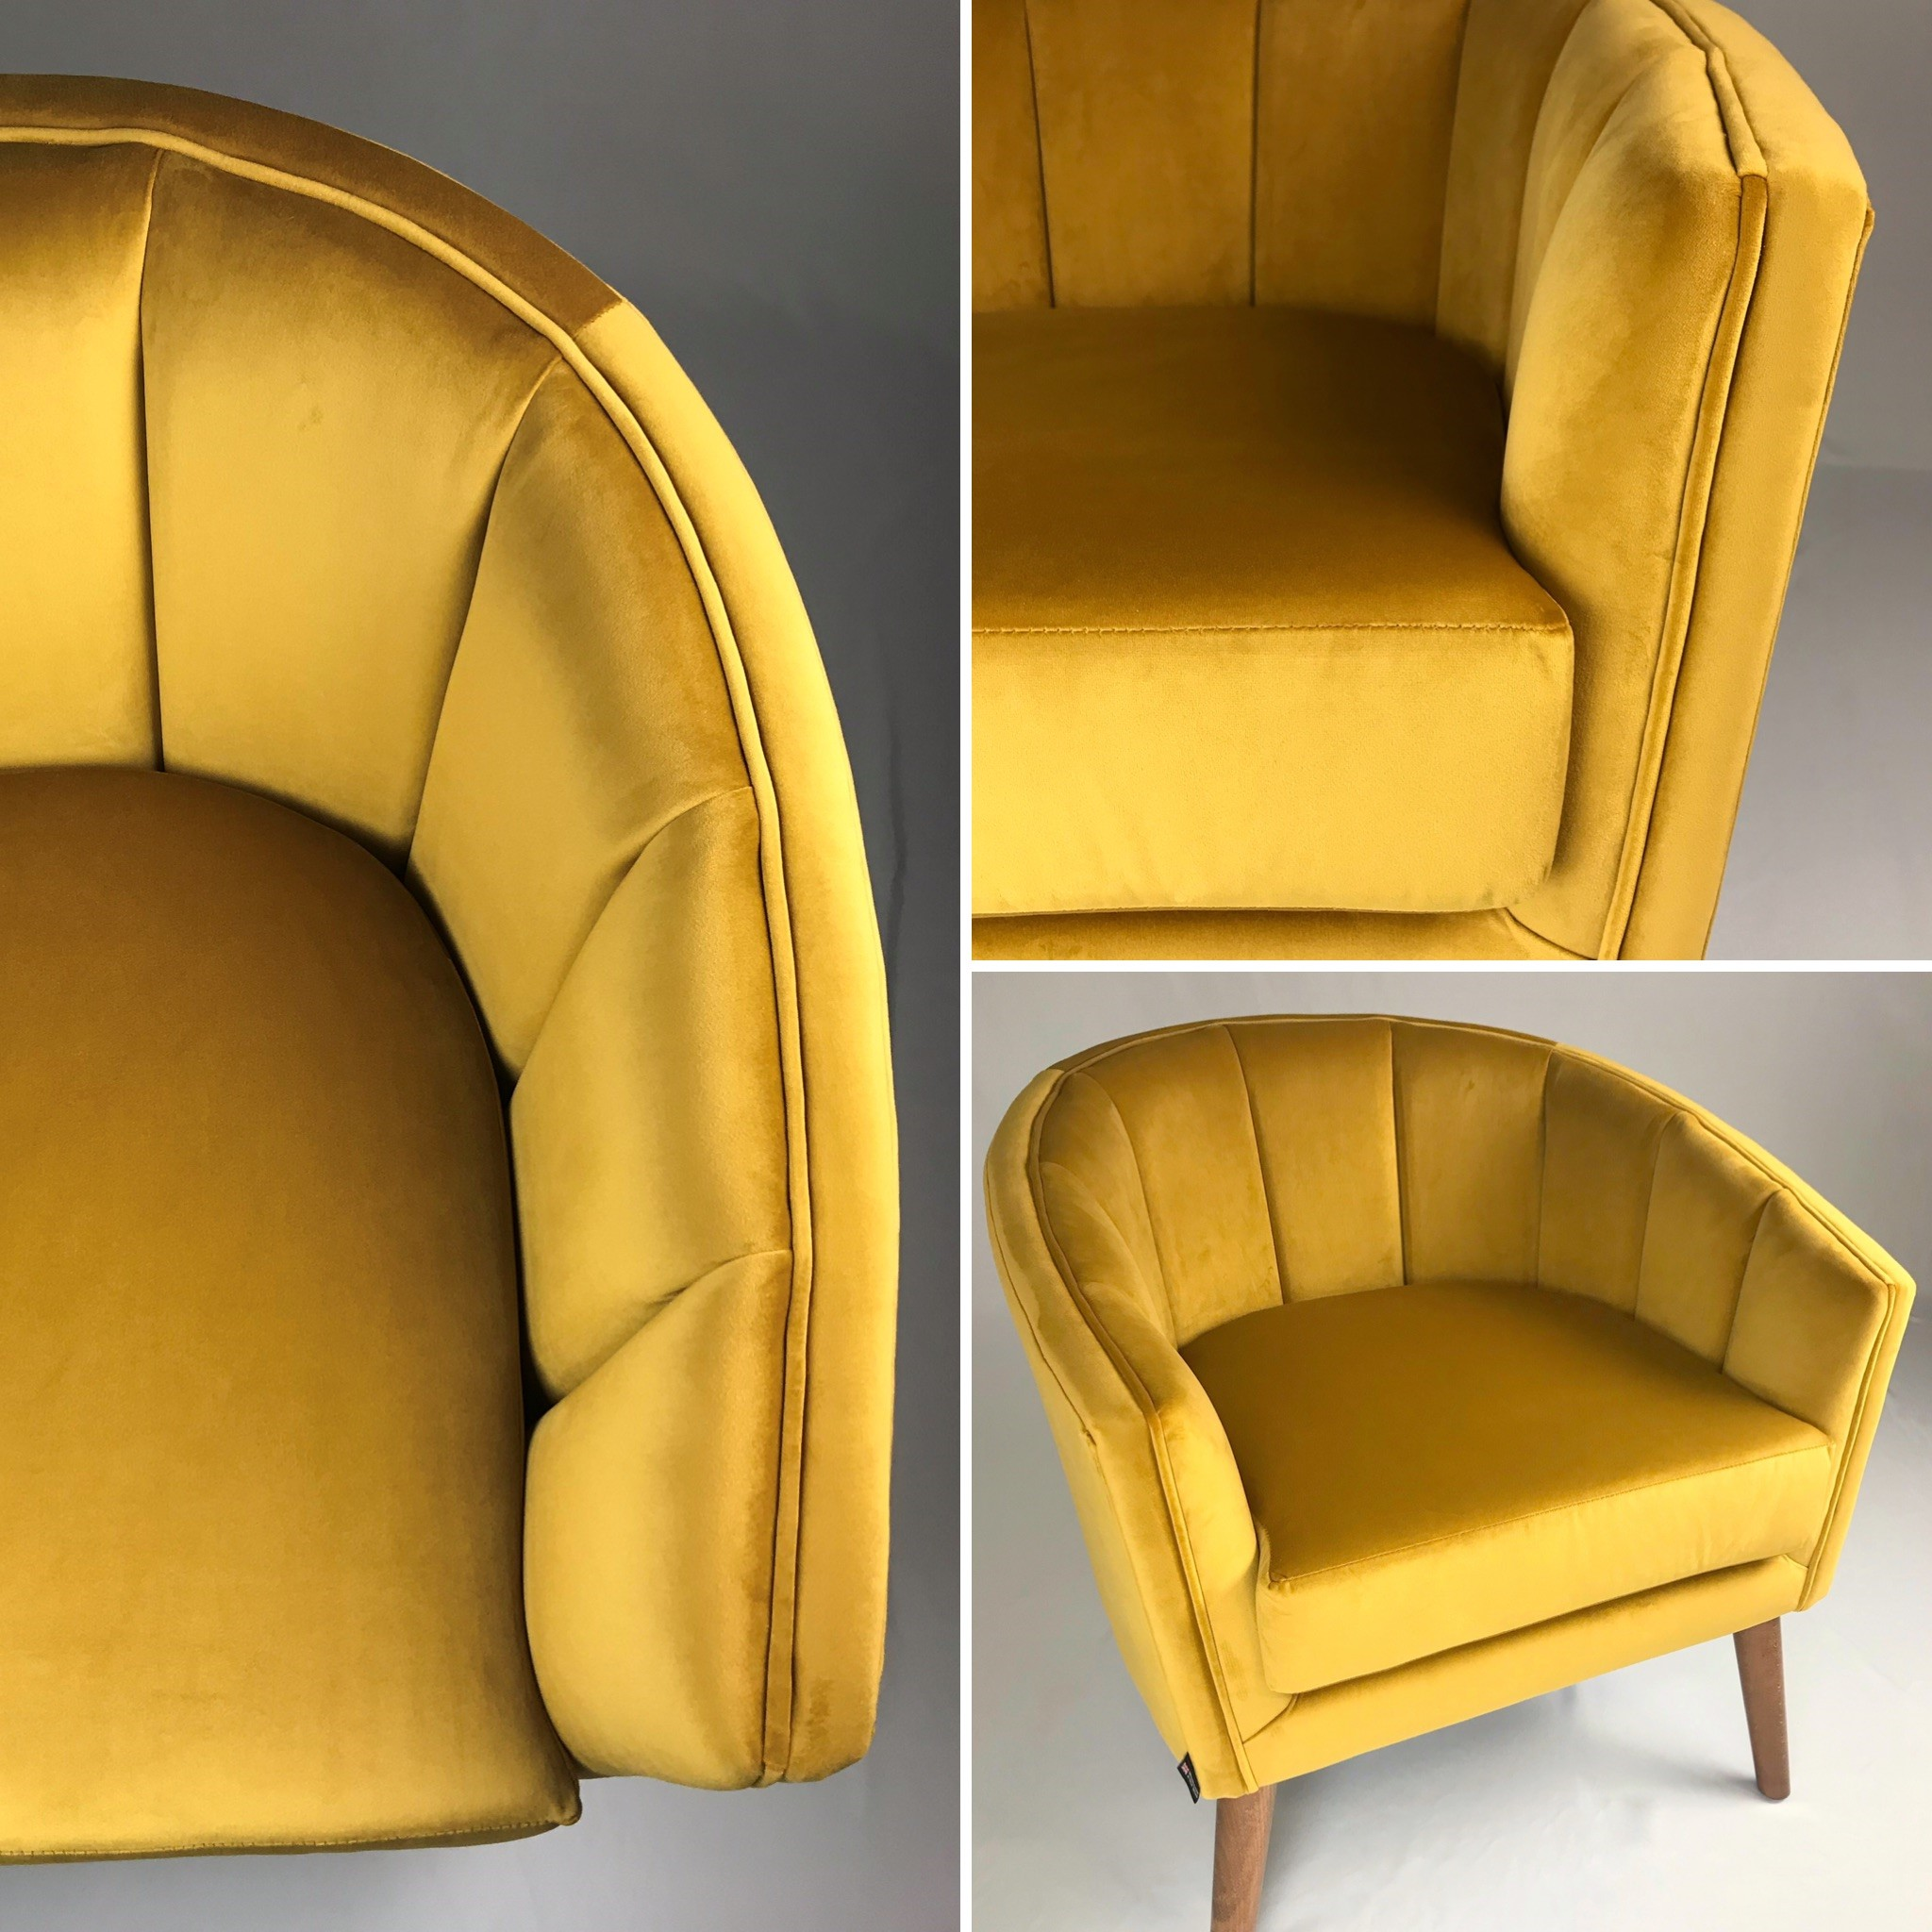 Deep mustard velvet extenuates the fluted details in this bespoke tub chair.  Developed and manufactured in-house at HF.